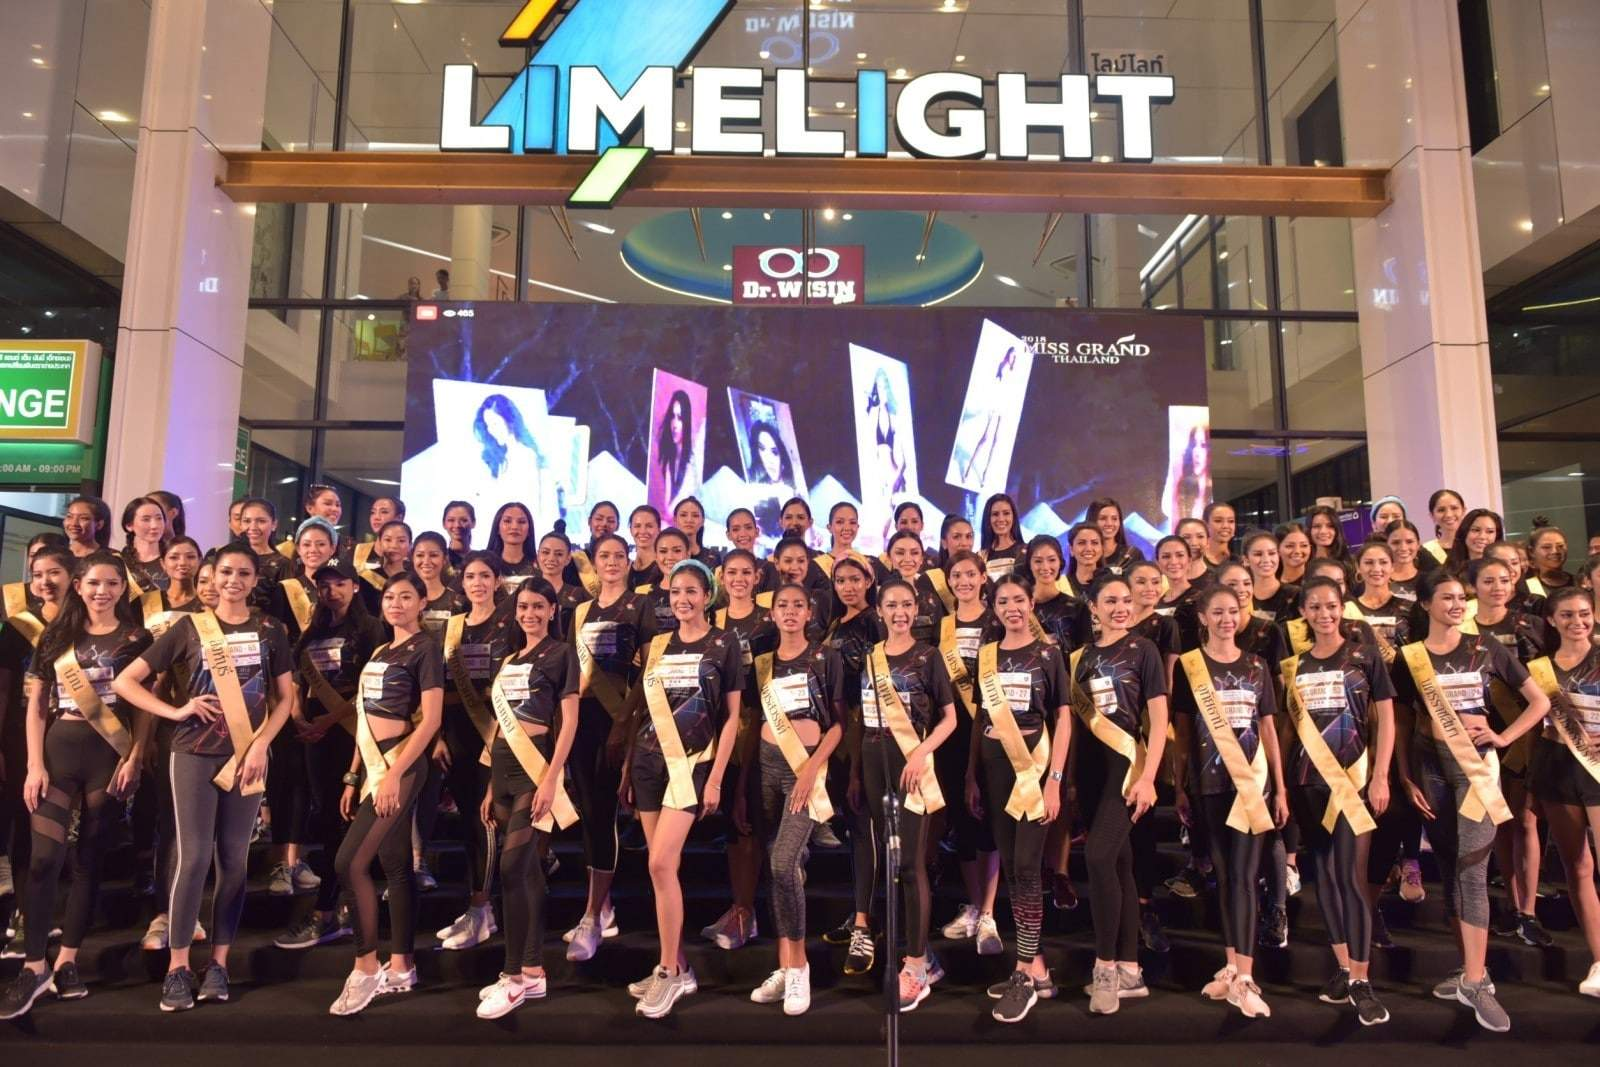 Miss Grand Thailand 2018 Charity Night Run Phuket by Limelight | The Thaiger